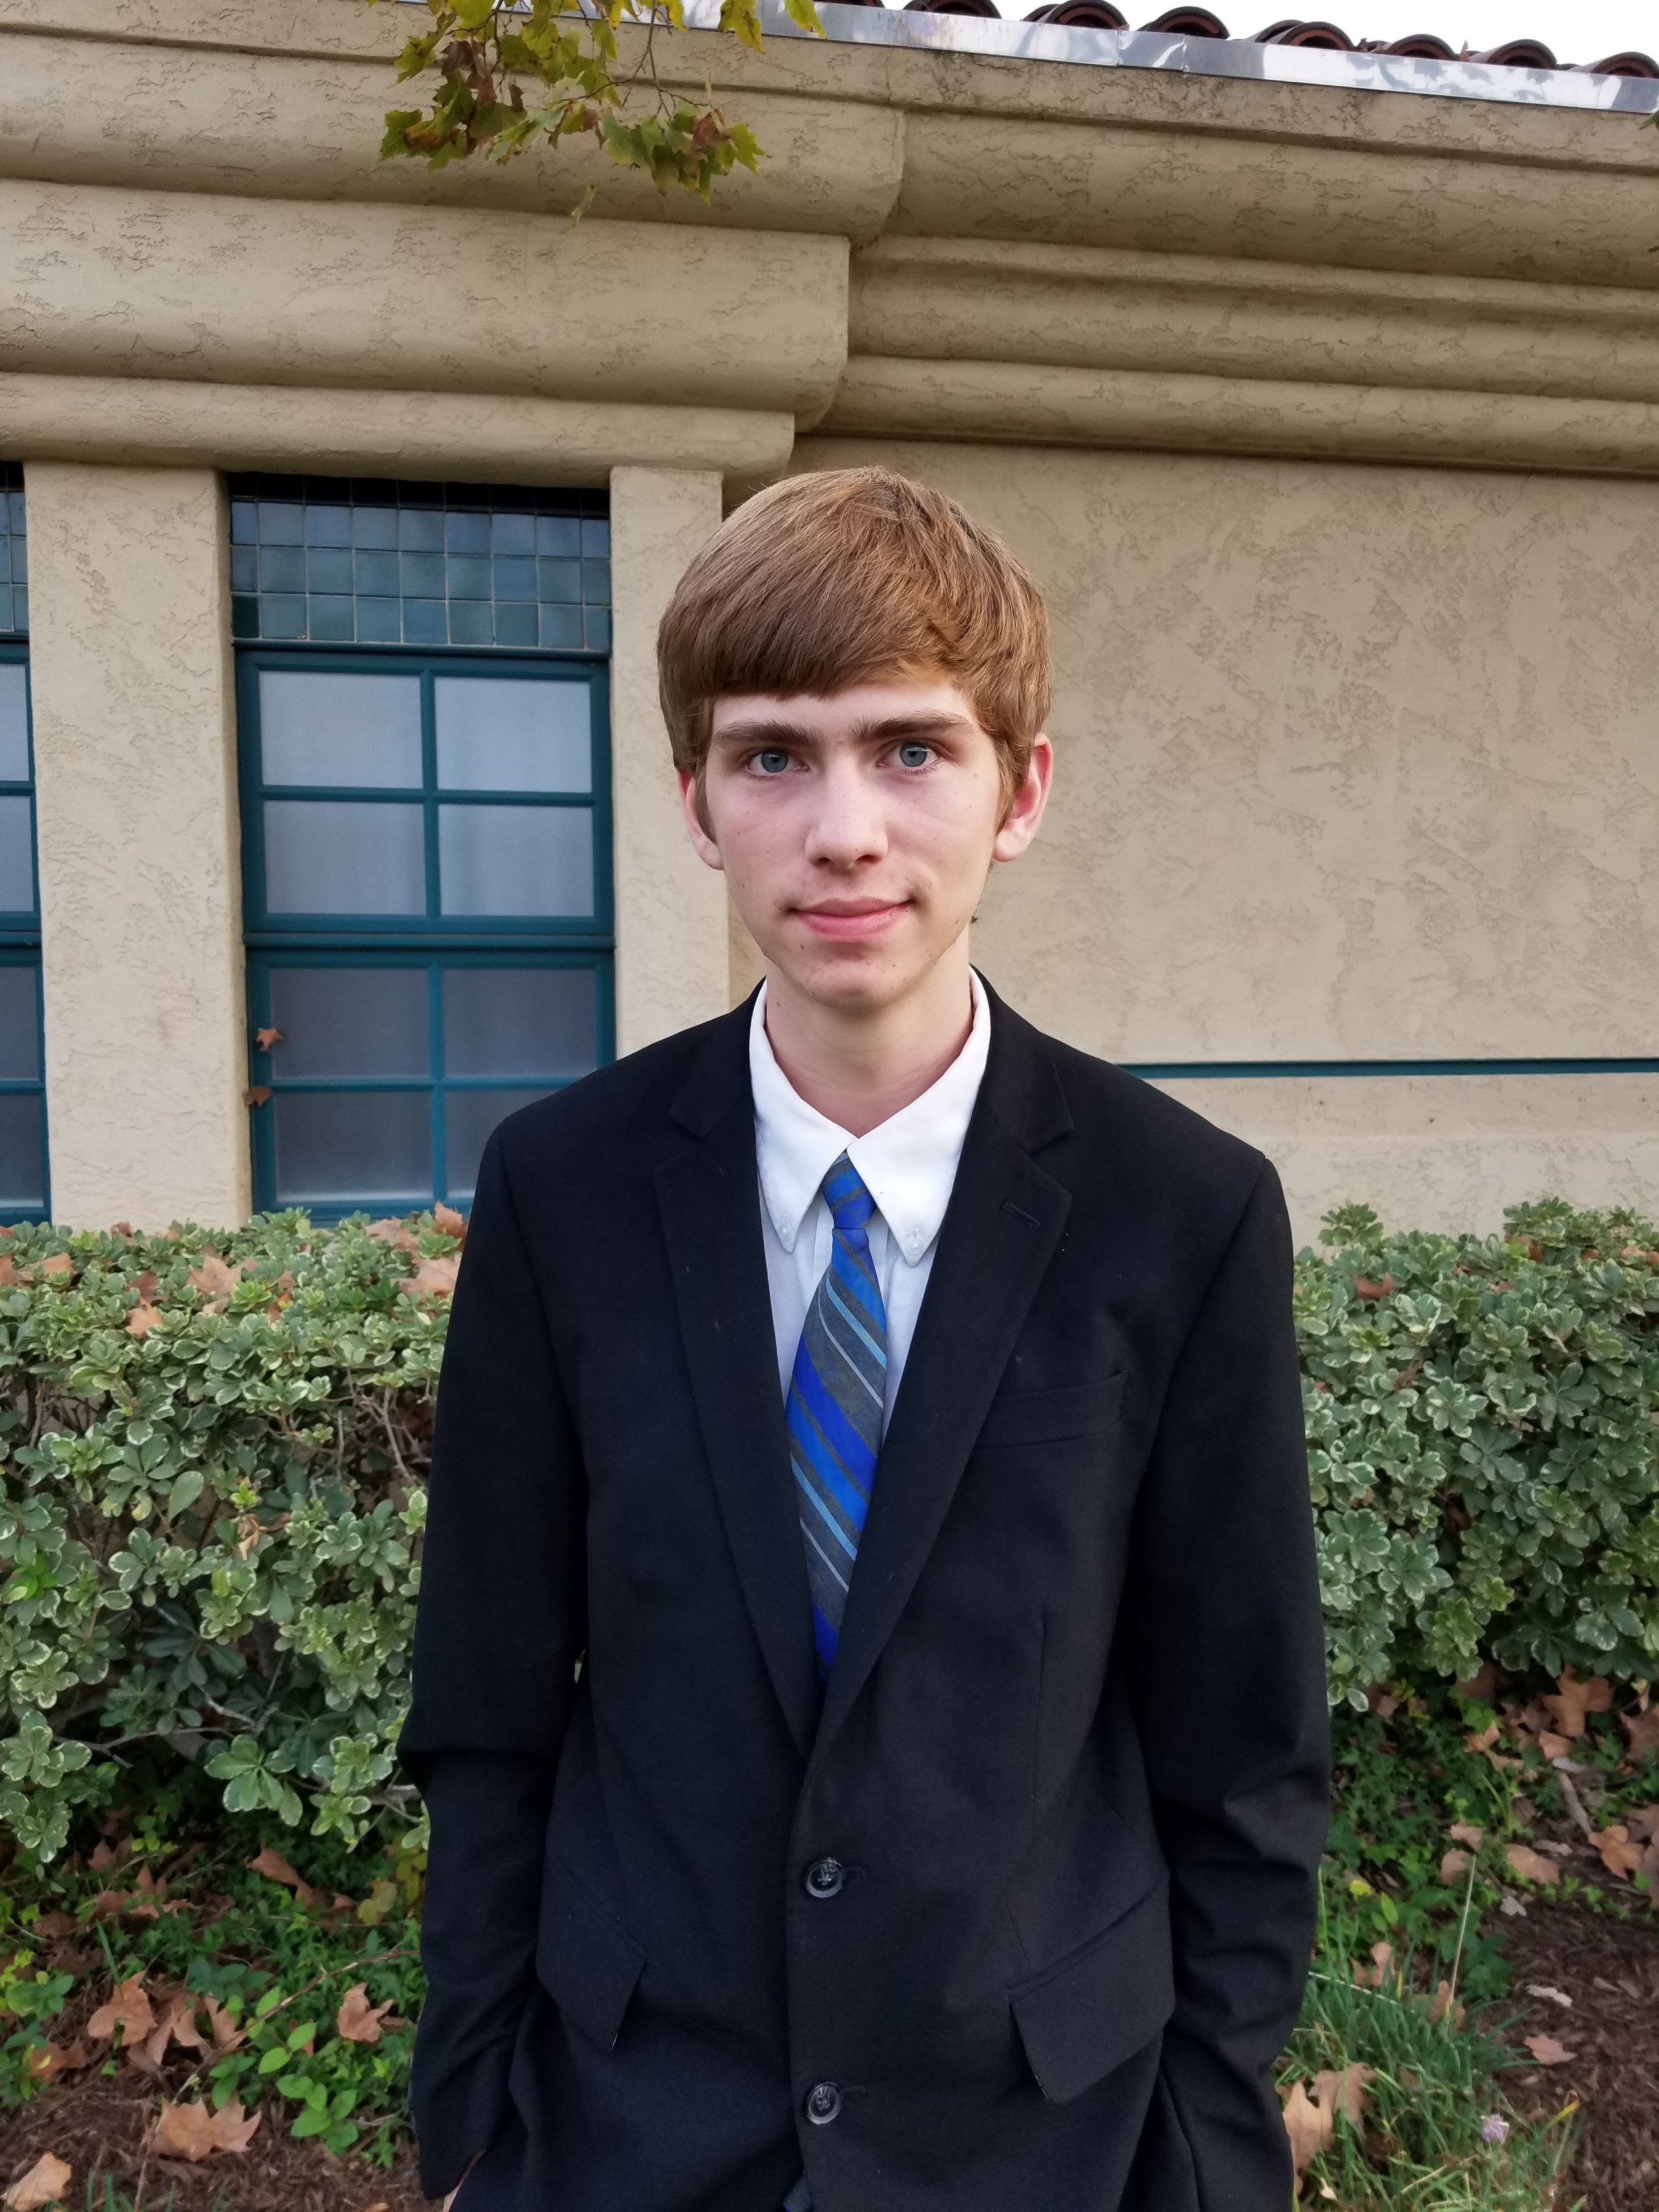 Max Brewer  Age 17  Attends El Toro High School  Enjoys Wumbo  Living the gospel makes it easier to avoid sin.